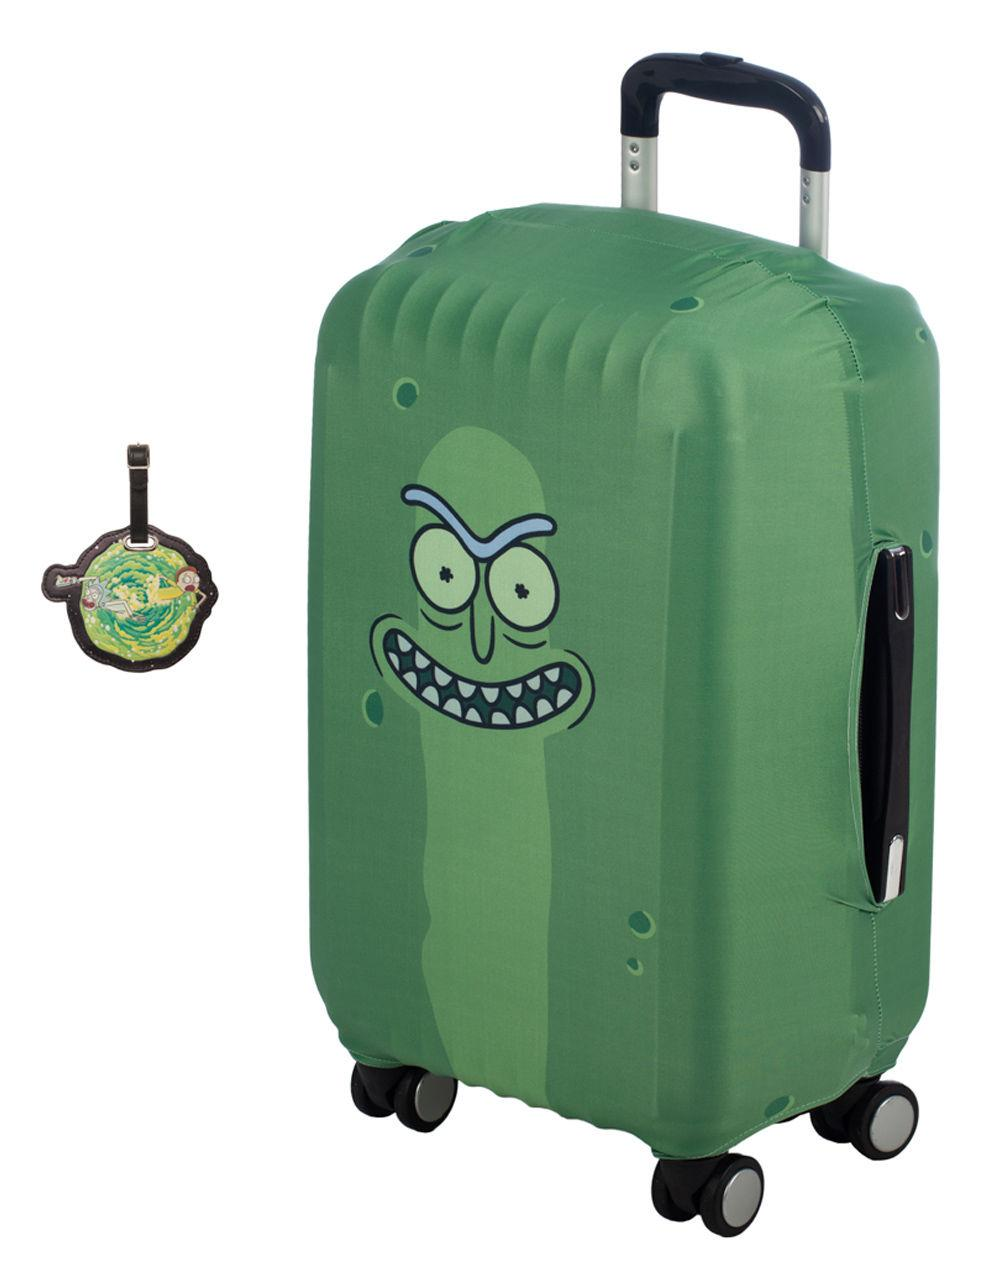 edb2e44788 Lyst - Bioworld Rick And Morty Luggage Tag   Sleeve Travel Pack in ...